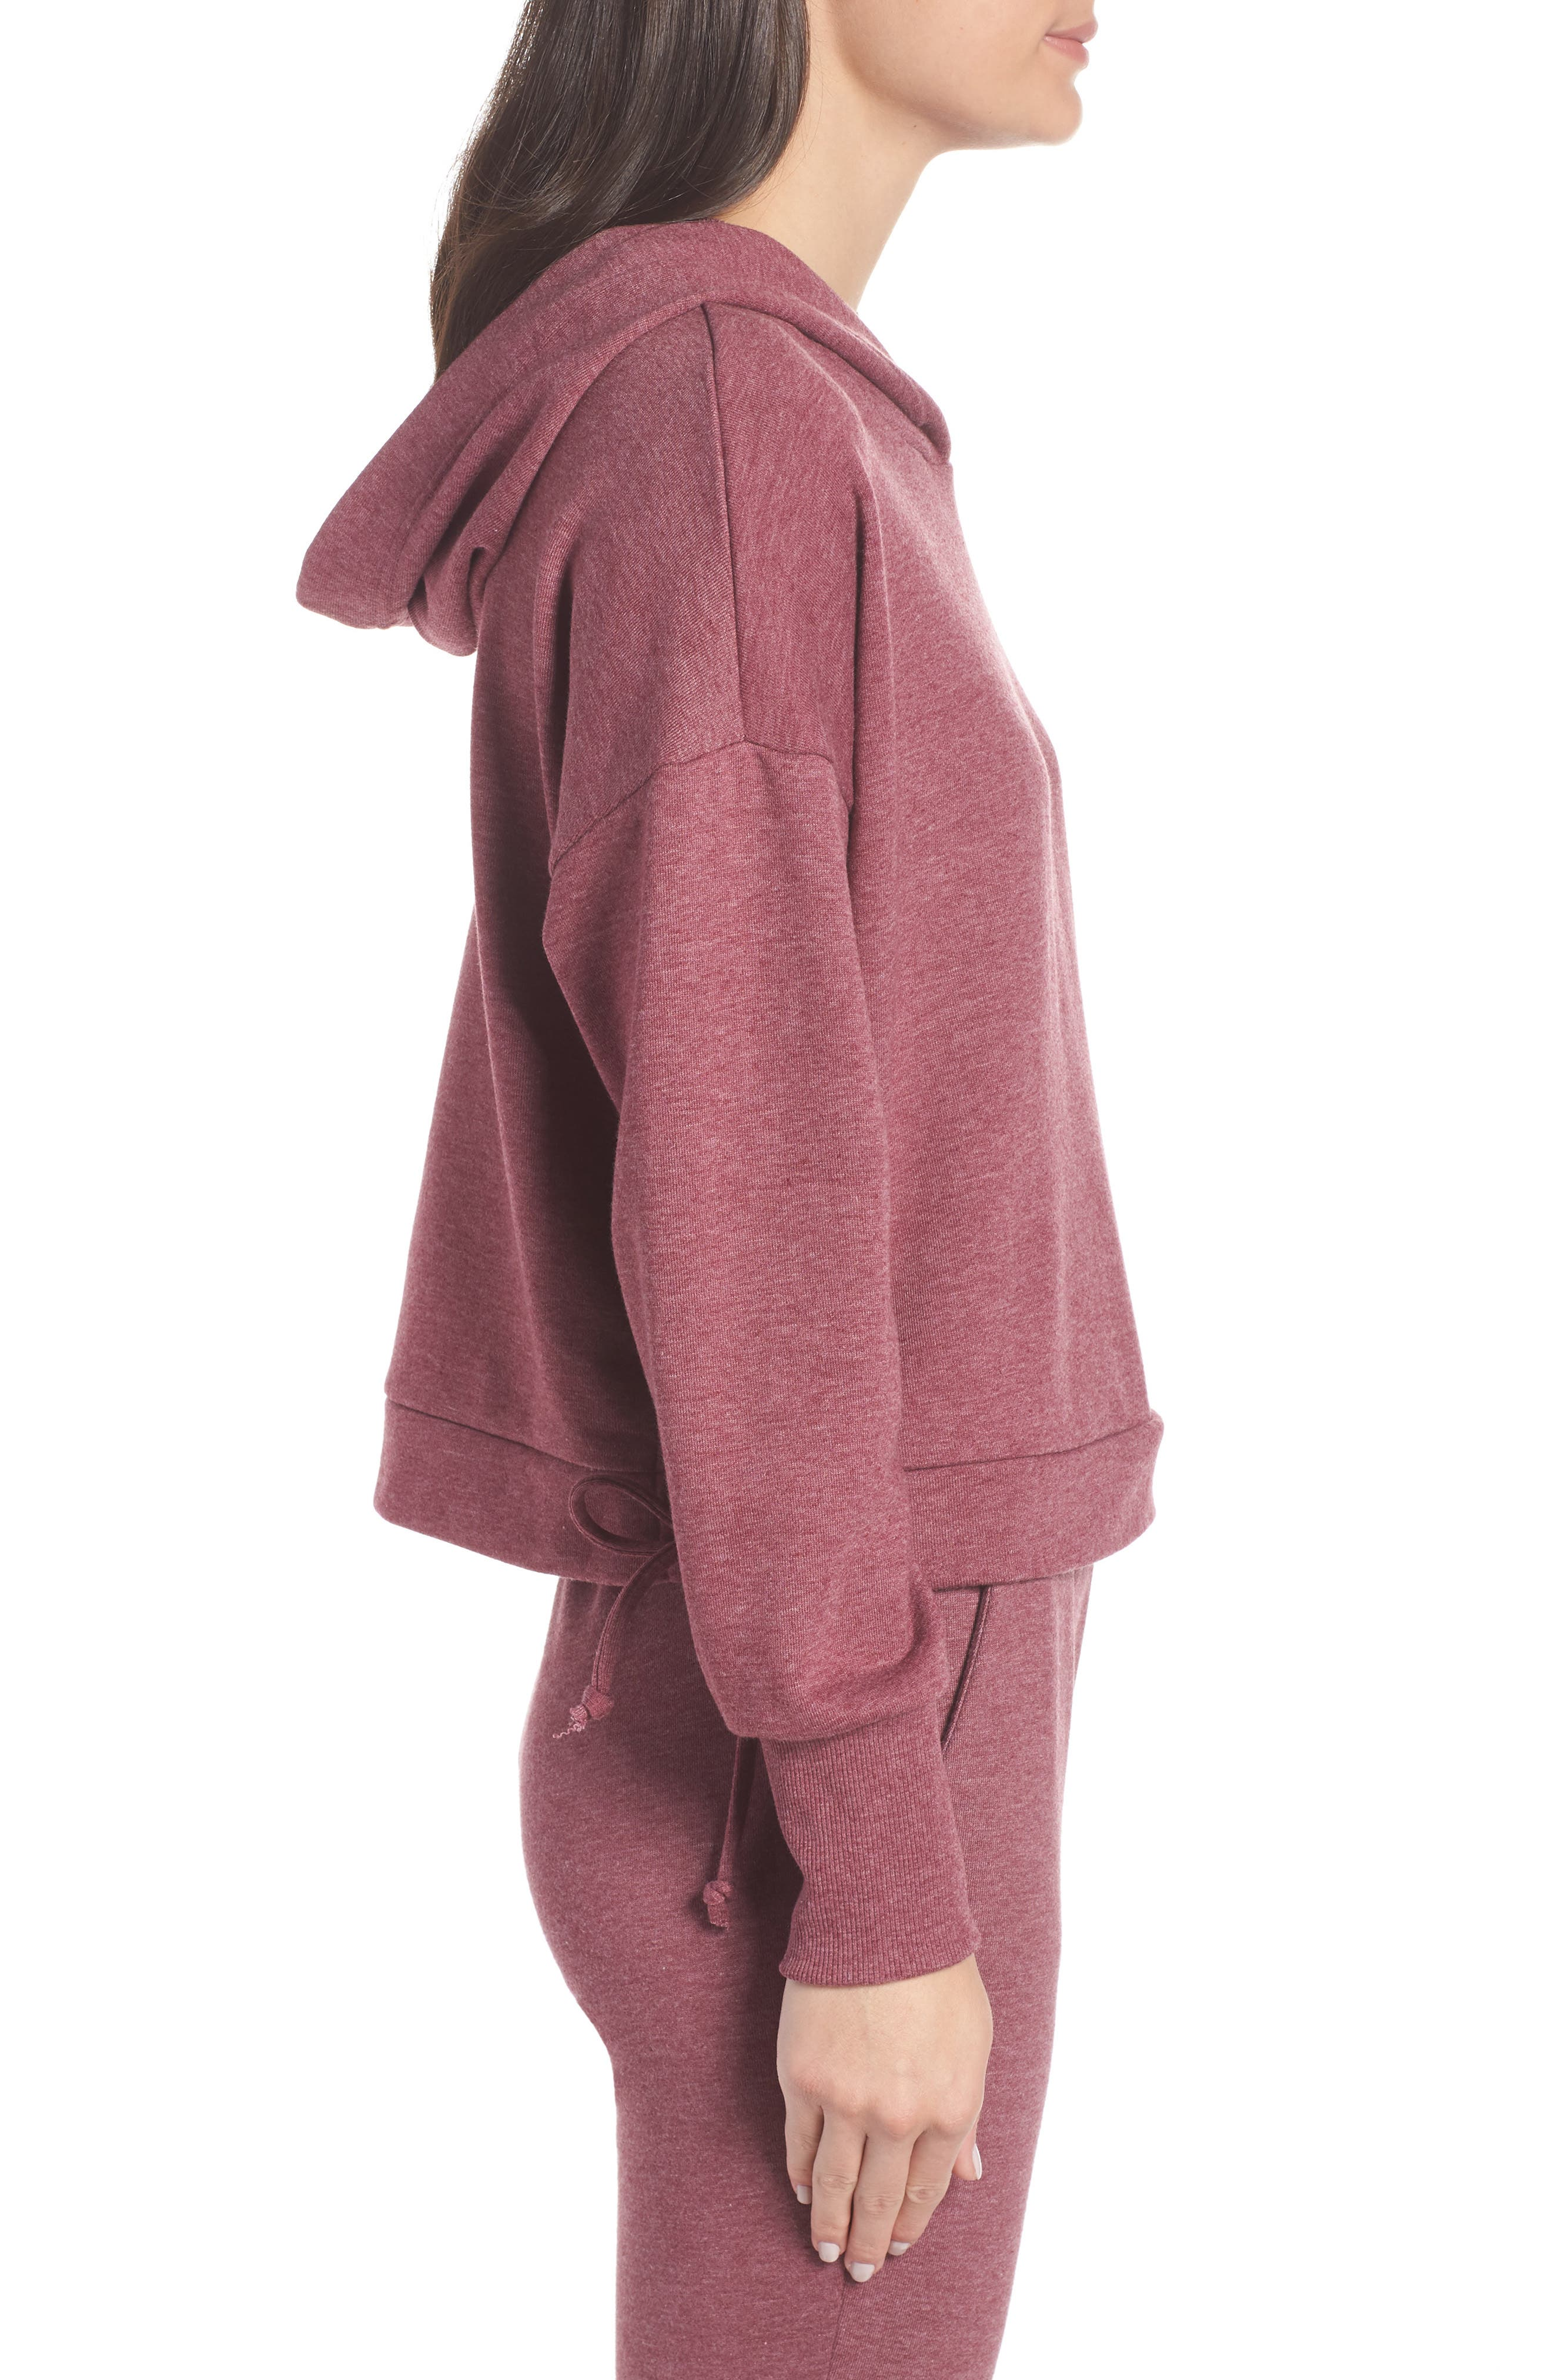 Whip It Hoodie,                             Alternate thumbnail 3, color,                             MULBERRY HEATHER